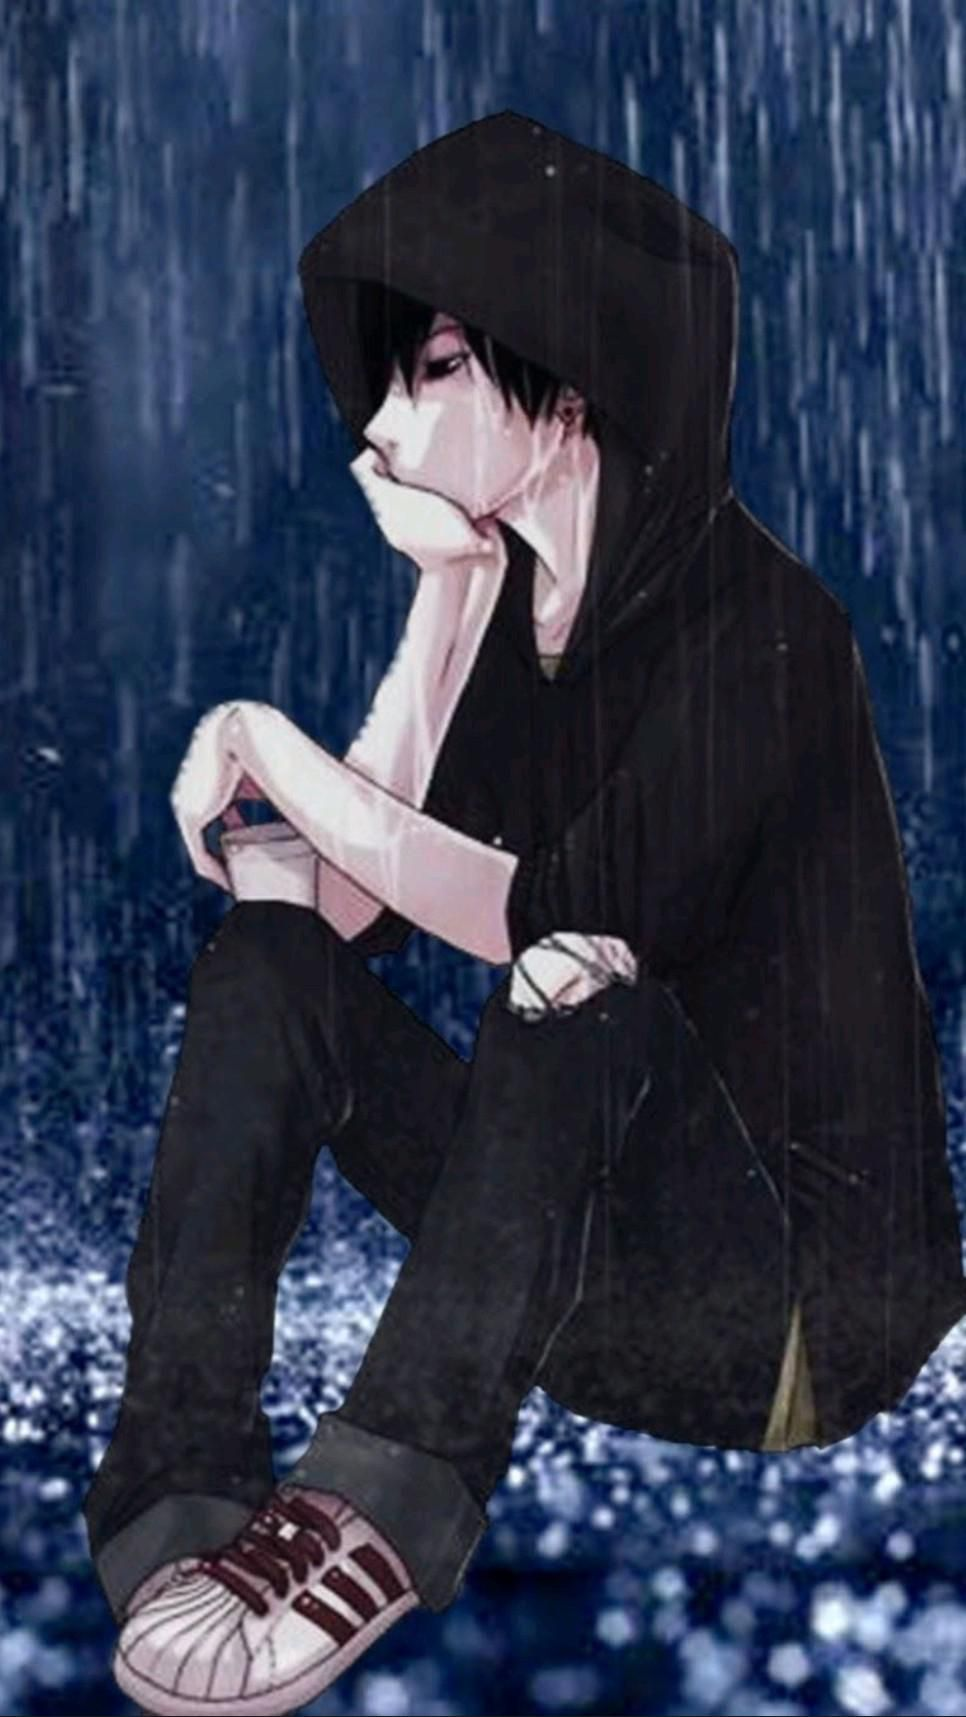 Lonely anime boy hd wallpaper for